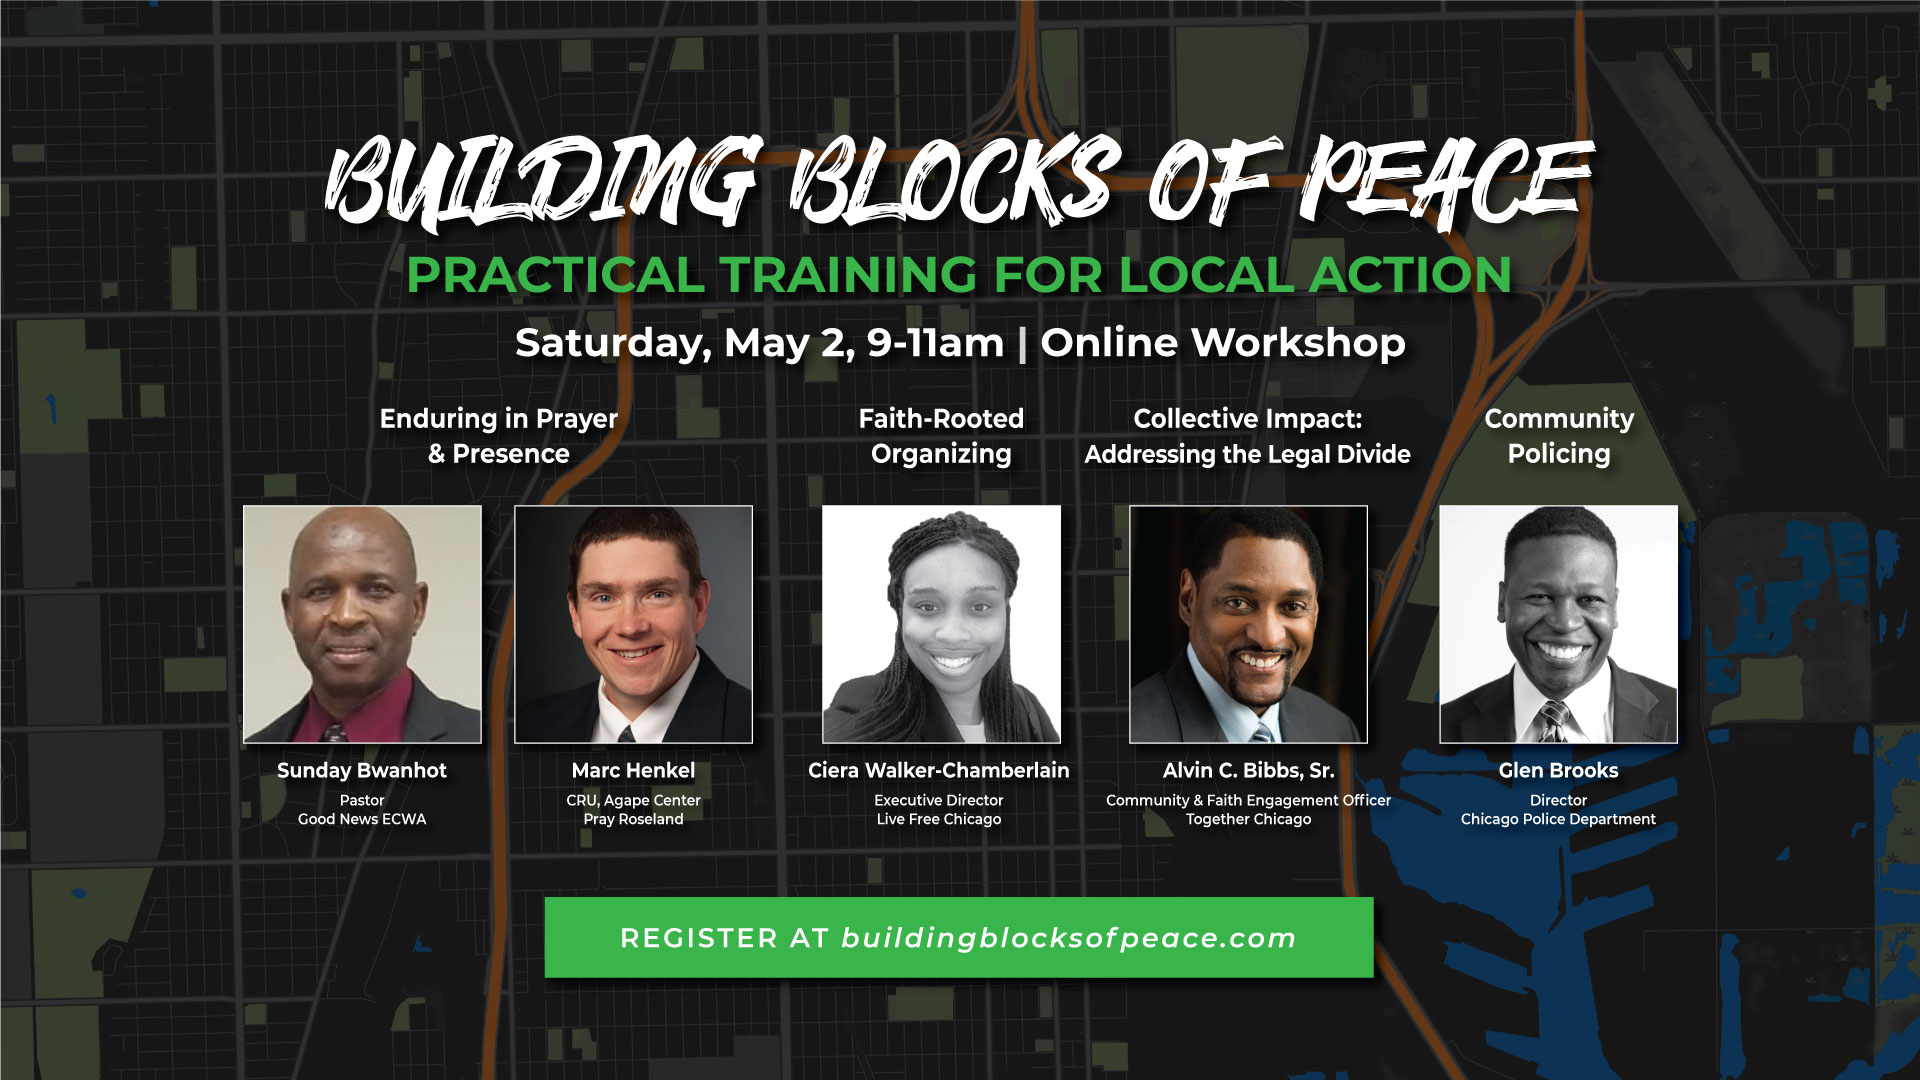 [ONLINE ONLY] Building Blocks of Peace Workshop 2020 #3 (SOUTH)